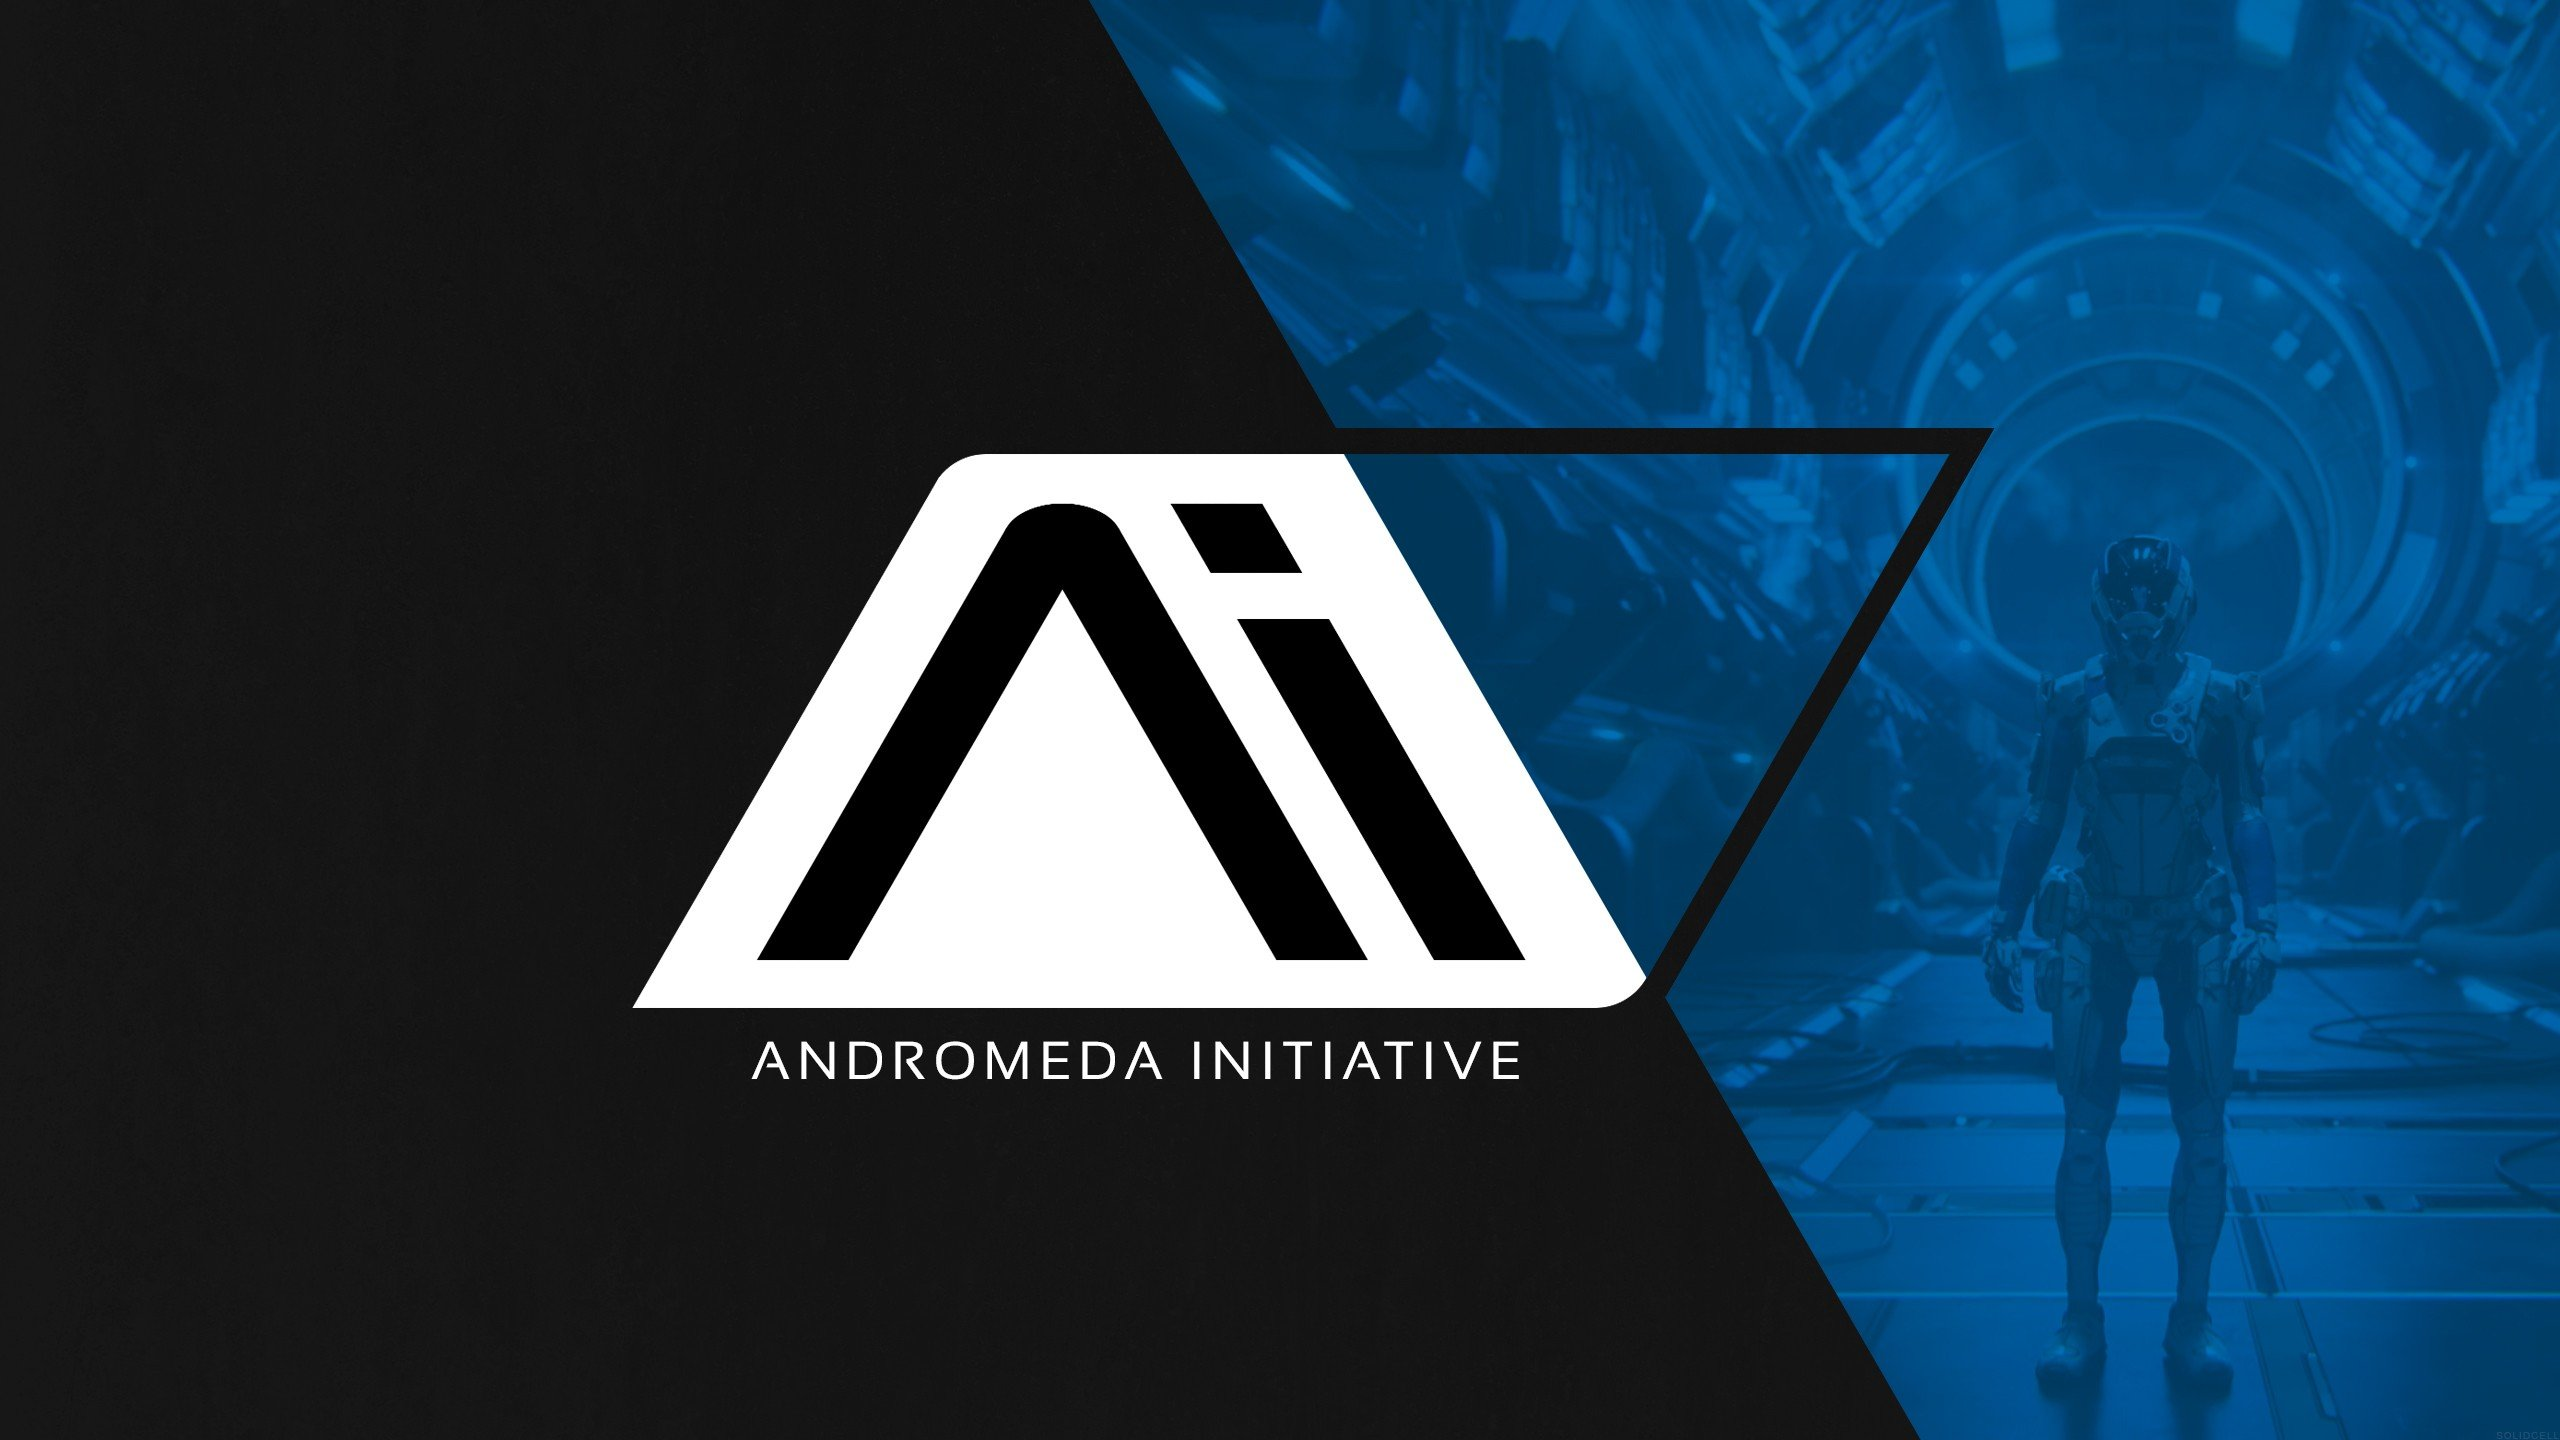 Mass Effect Andromeda Andromeda Initiative Hd Wallpapers Desktop And Mobile Images Photos